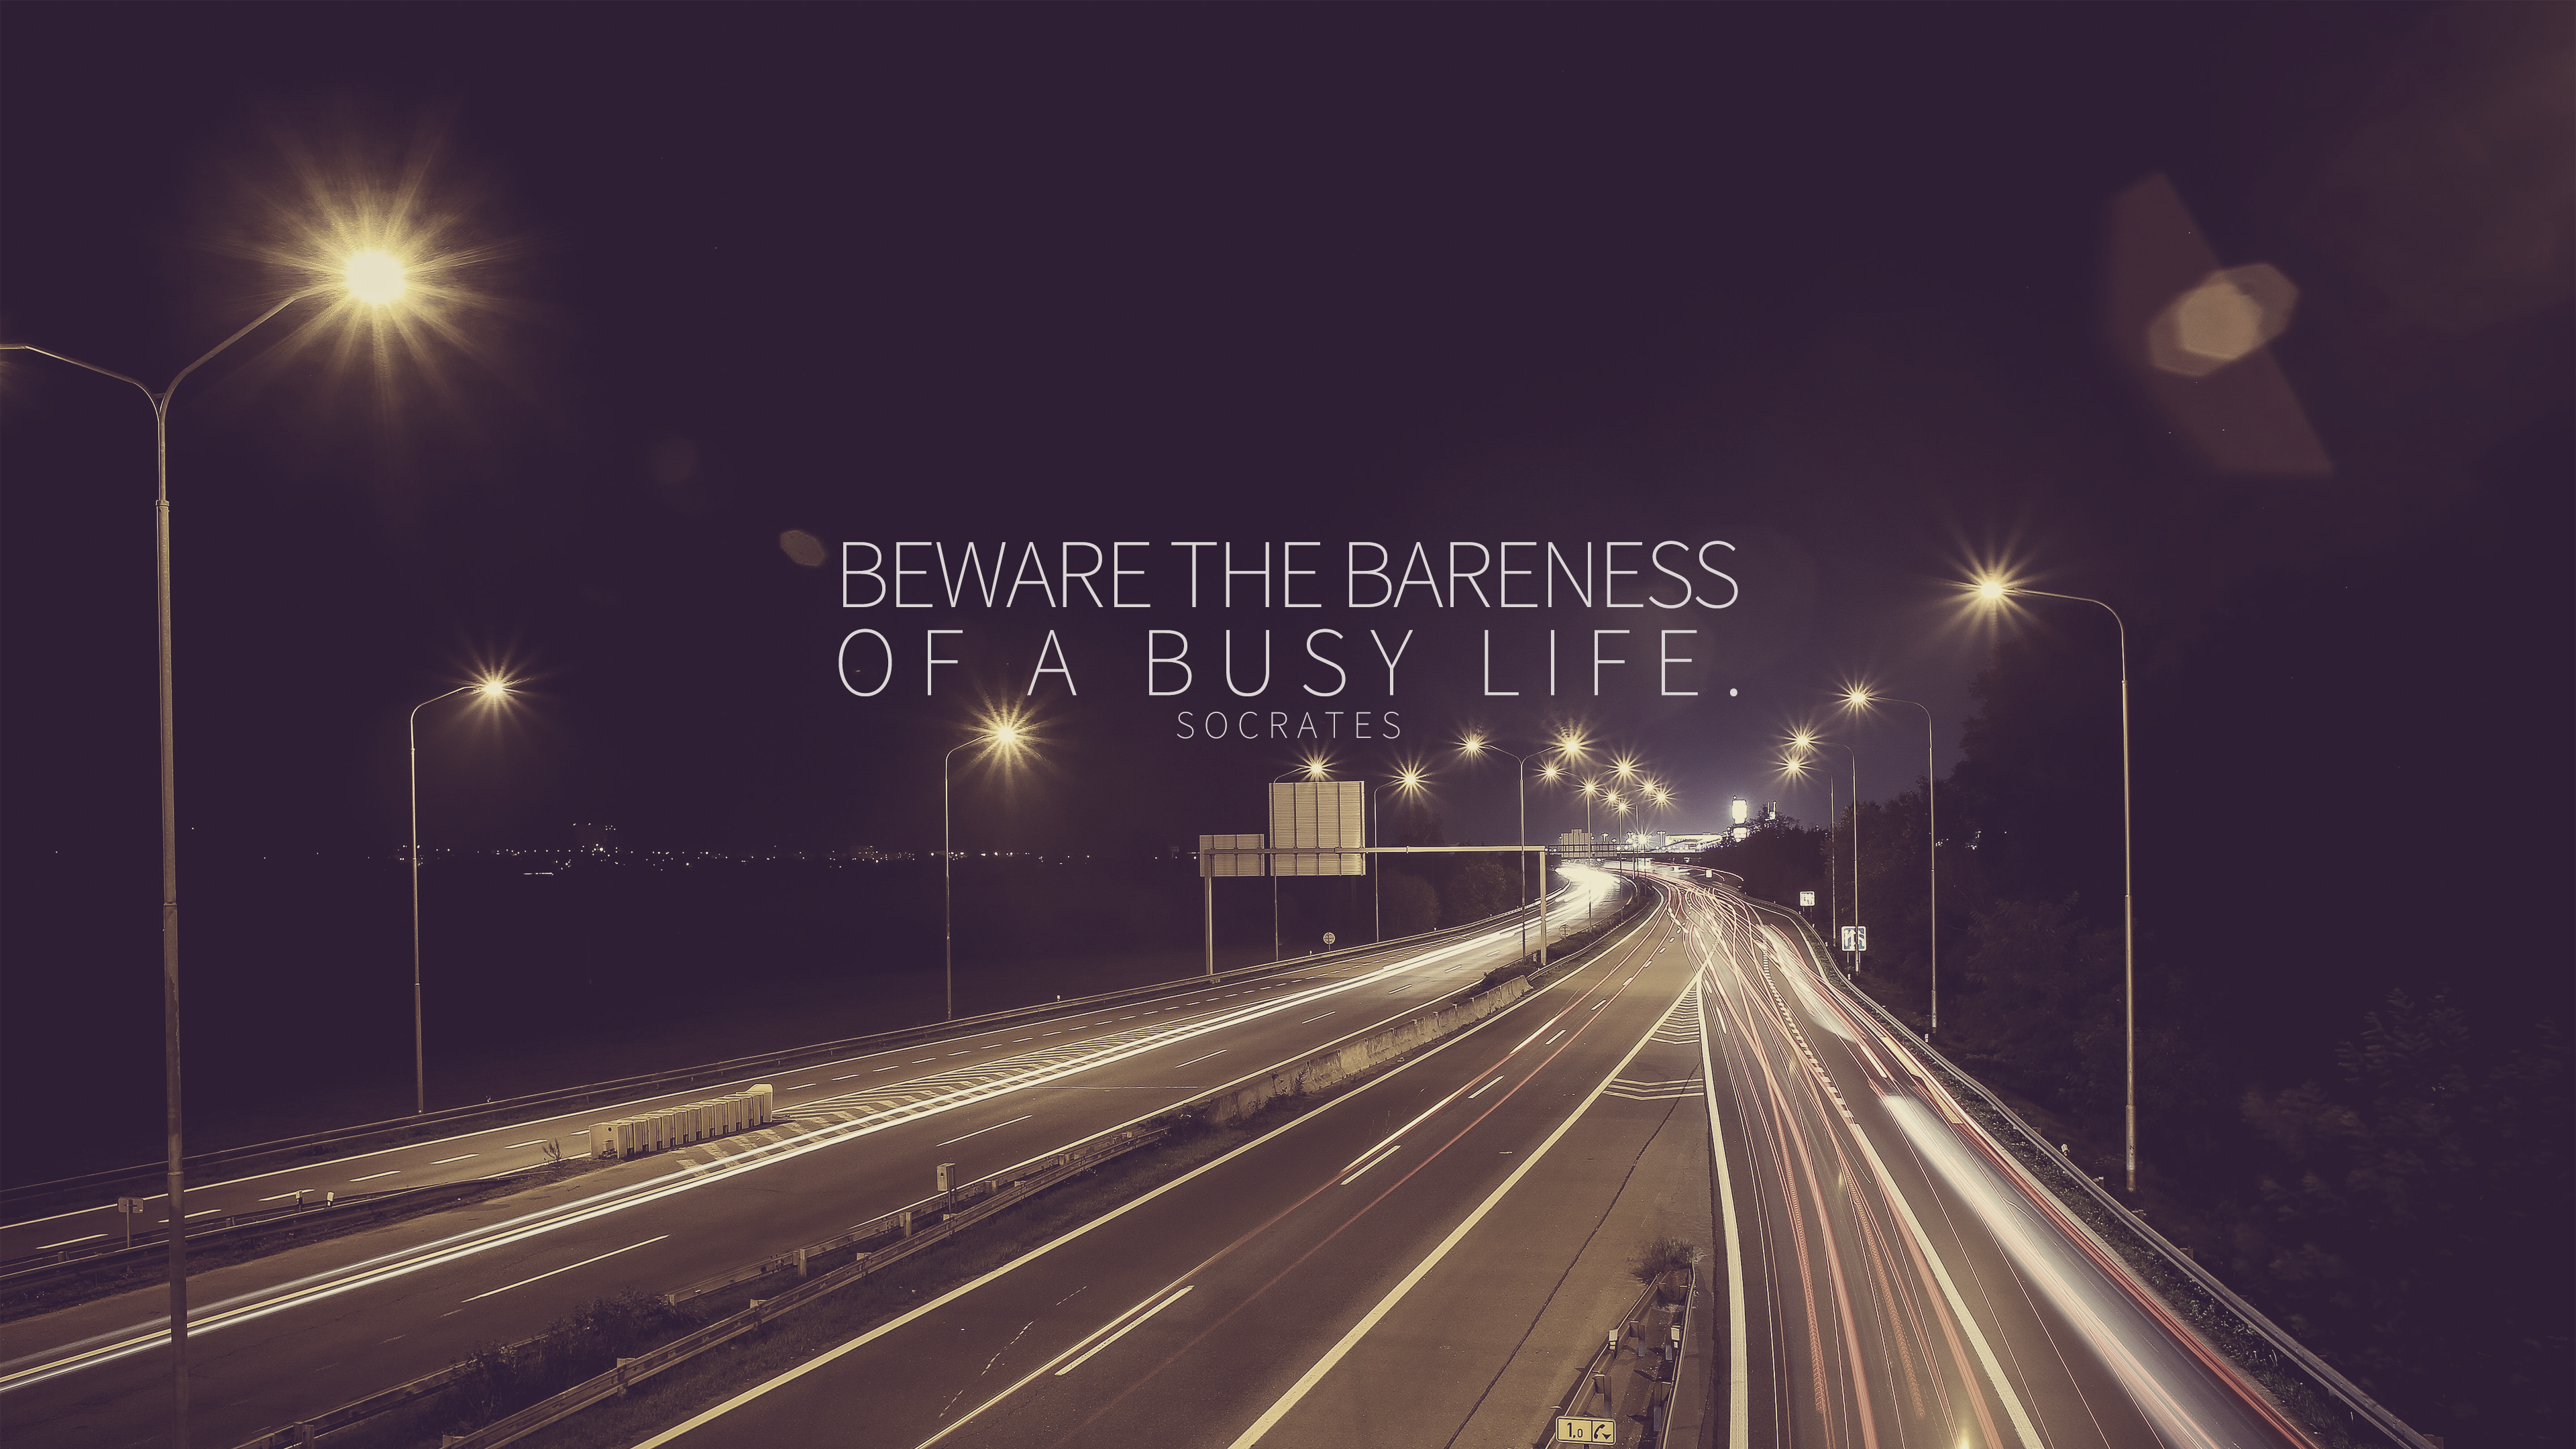 Beware the bareness of a busy life. Socrates